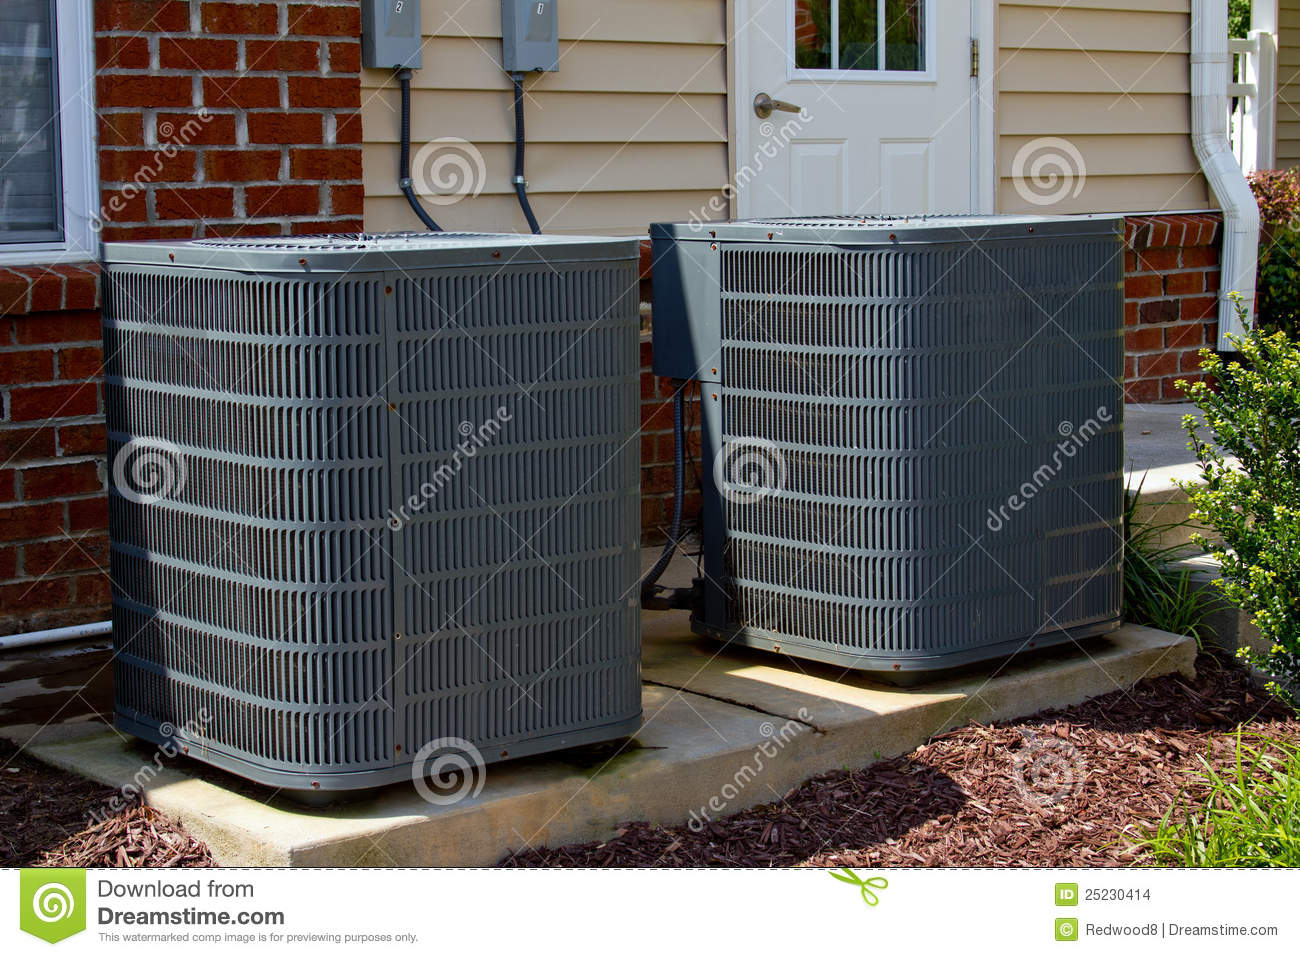 Air conditioning units stock images image 25230414 for Air conditioner pad concrete